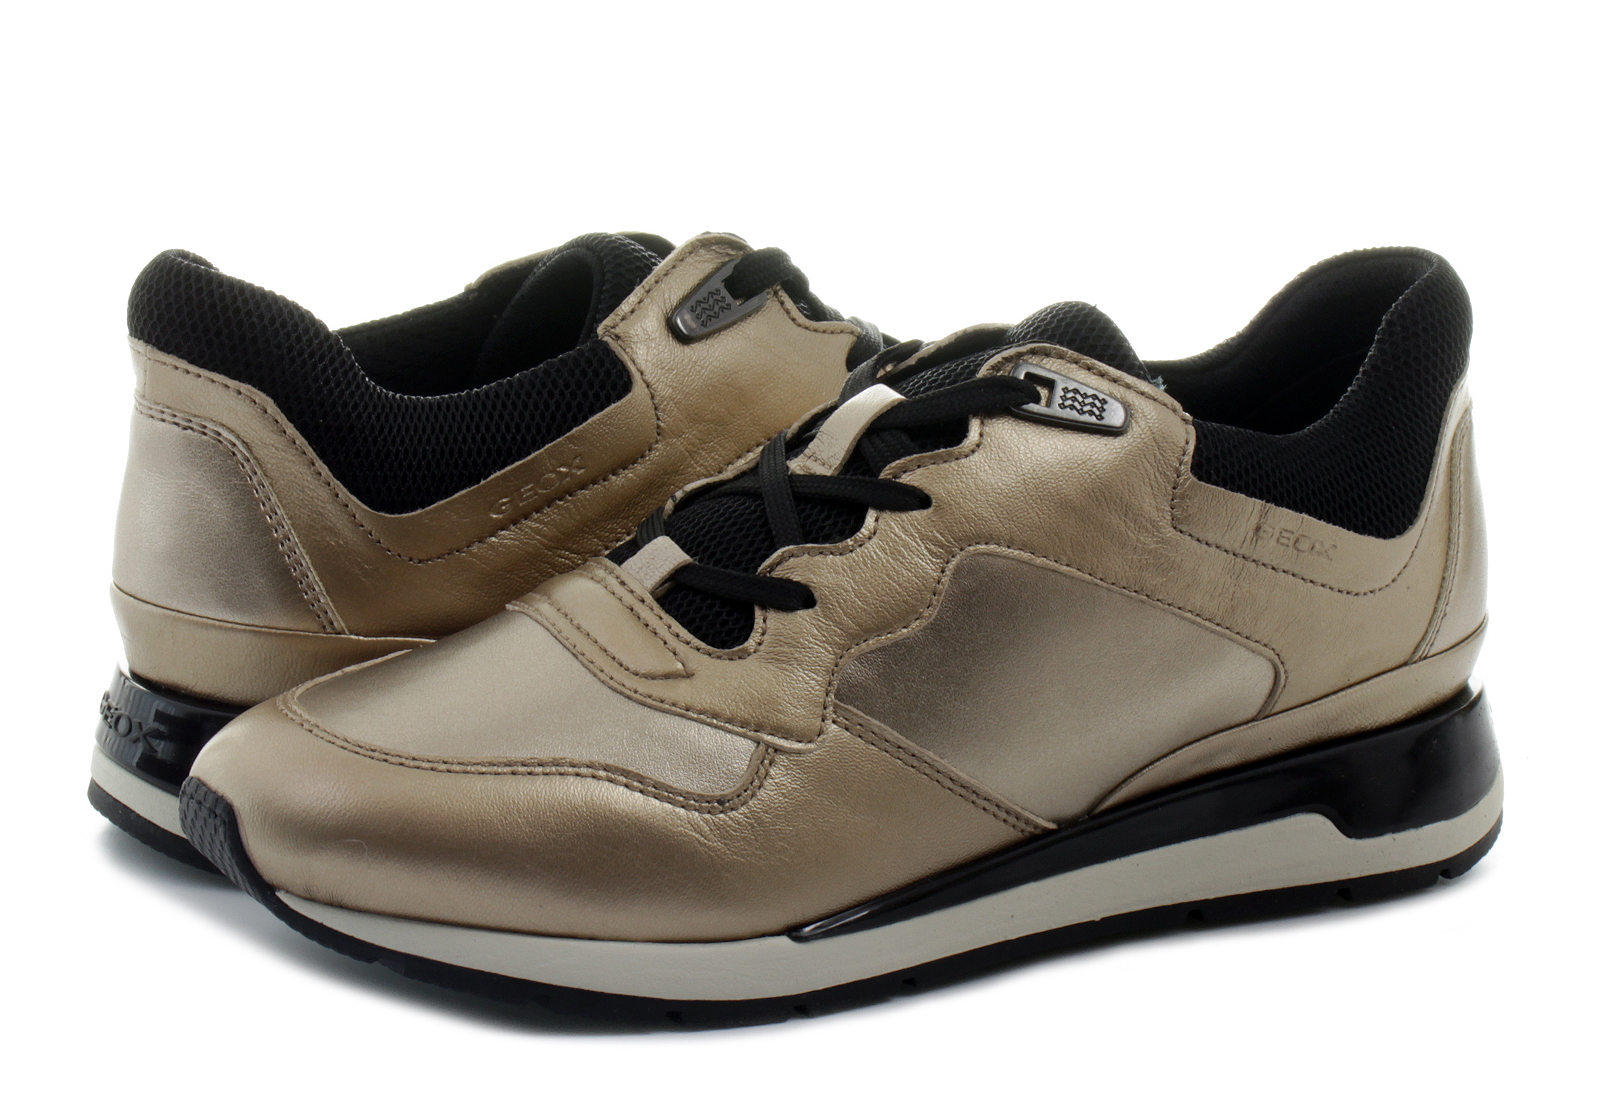 Geox Shoes D Shahira N1b Nfbv B500 Online Shop For Sneakers Shoes And Boots